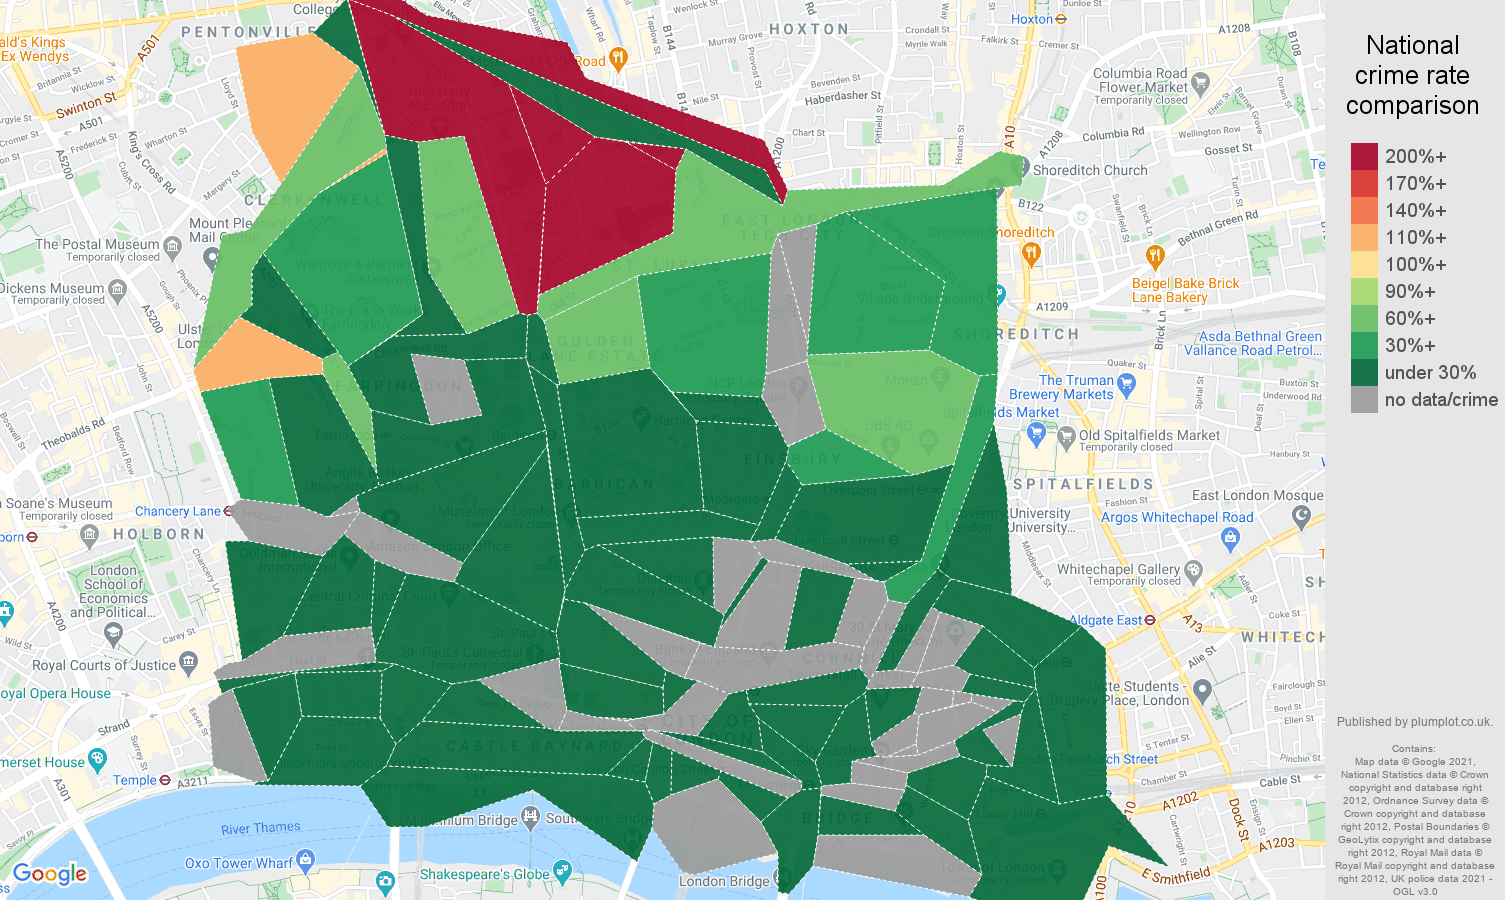 East Central London antisocial behaviour crime rate comparison map